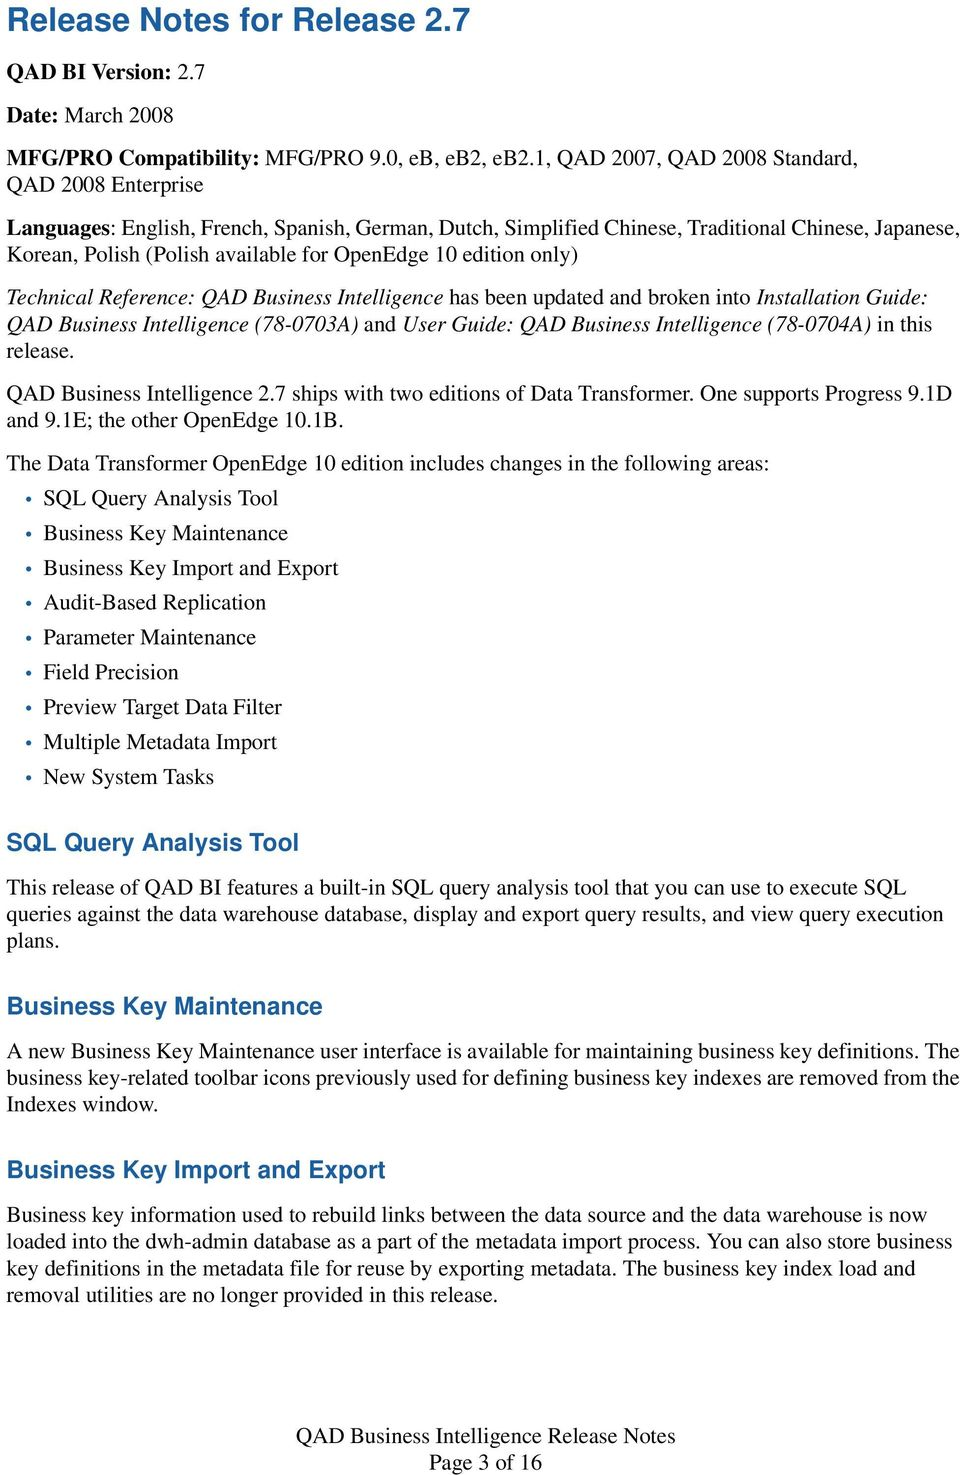 OpenEdge 10 edition only) Technical Reference: QAD Business Intelligence has been updated and broken into Installation Guide: QAD Business Intelligence (78-0703A) and User Guide: QAD Business